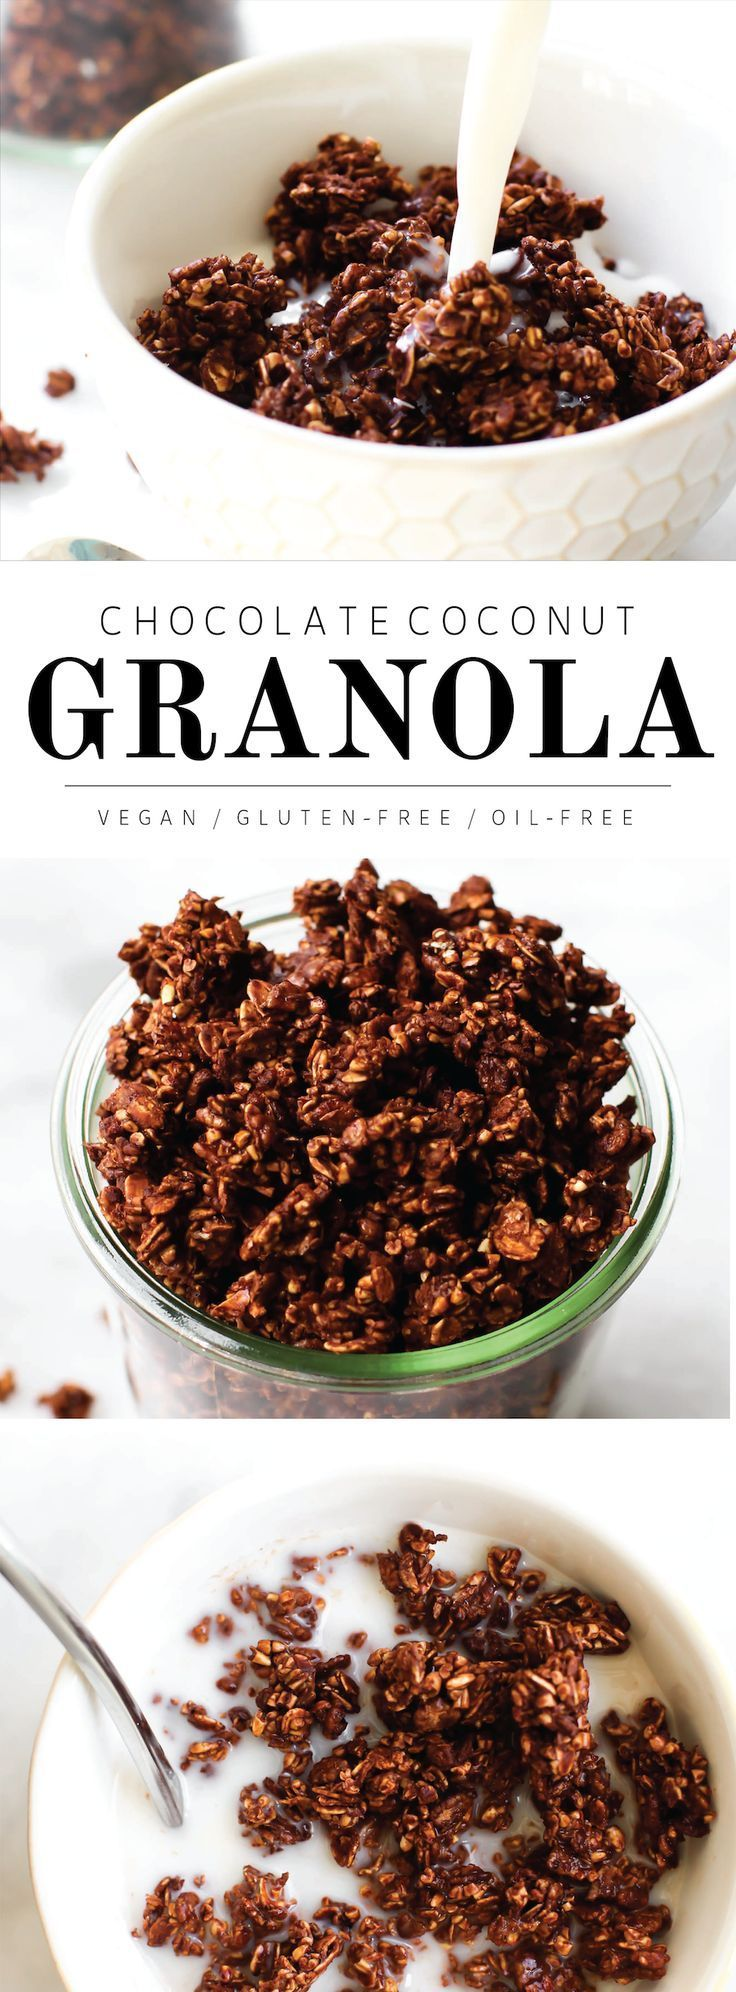 4f503a6c271e3cbe2e1637ca317d398e  vegan chocolate granola vegan chocolate coconut Oil Free Chocolate Coconut Granola. The ultimate crunchy, cluster packed sweet s...